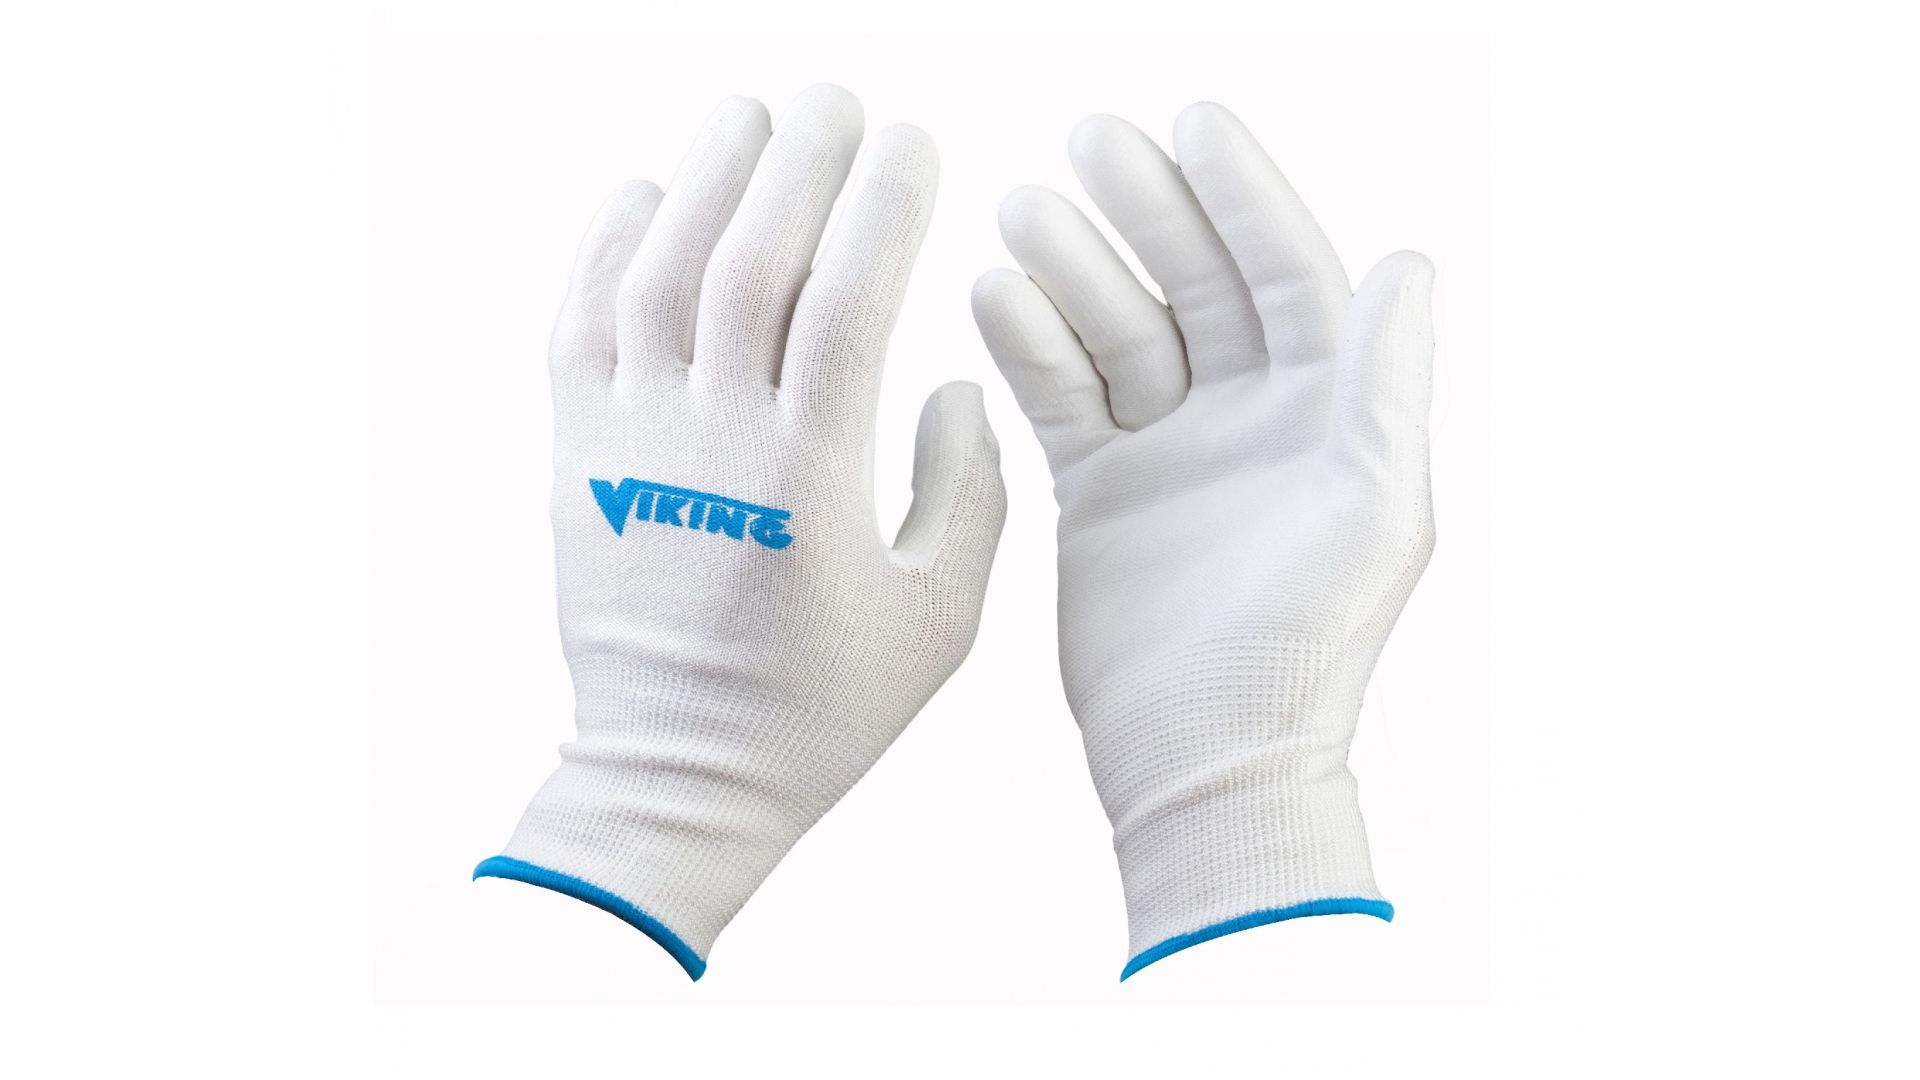 Glove Protector Competition